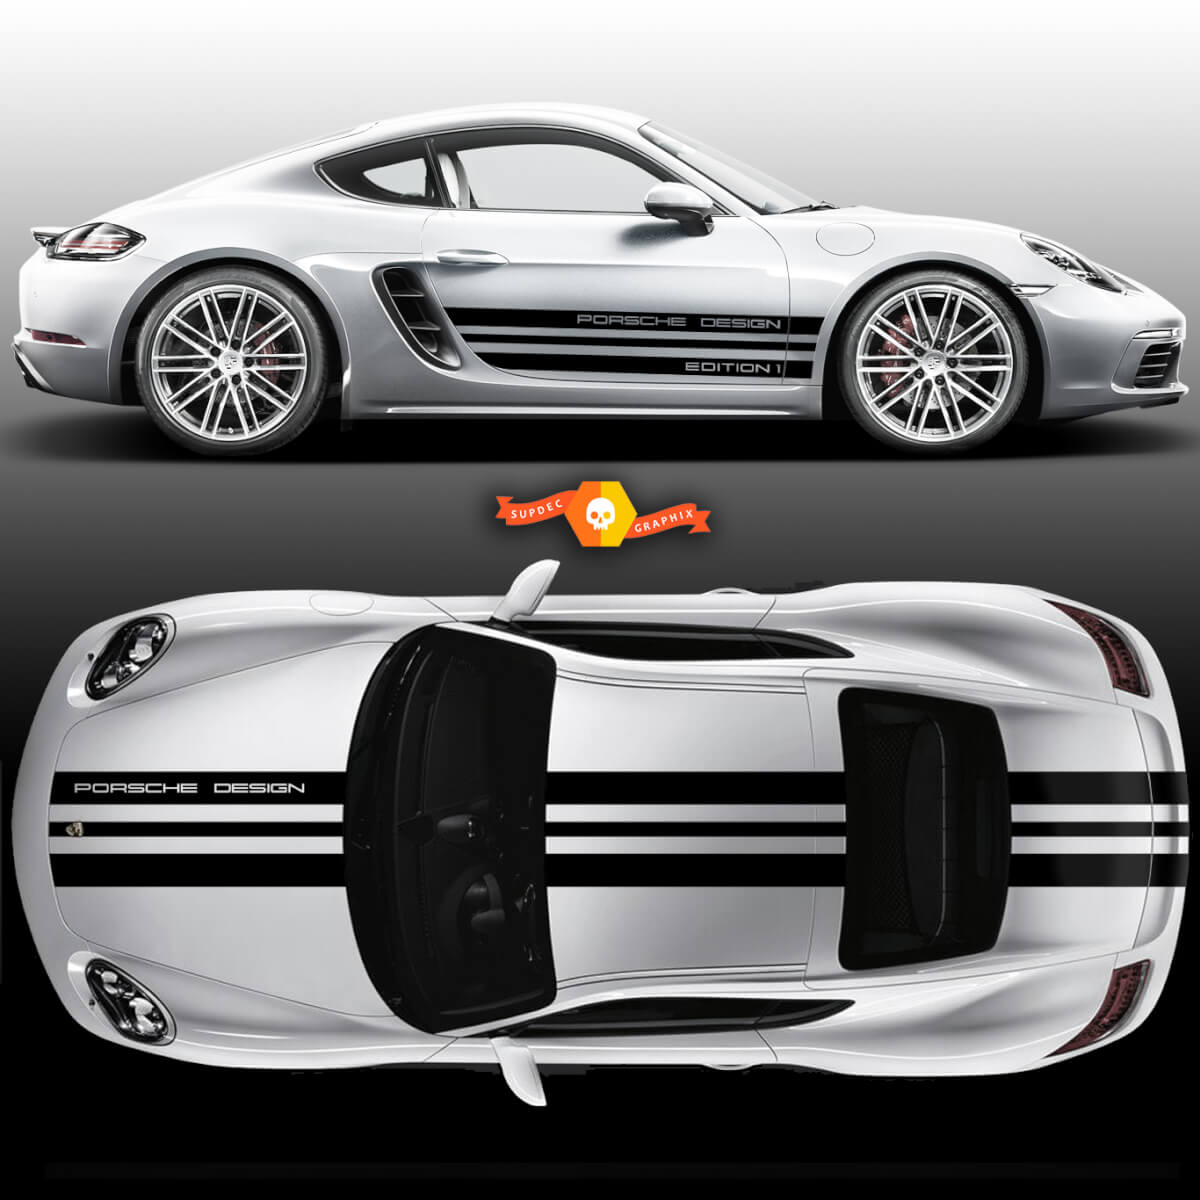 One Color Sport Cup Edition 1 Graphic Decals Kits Racing Stripe Over The Top Roof Porsche